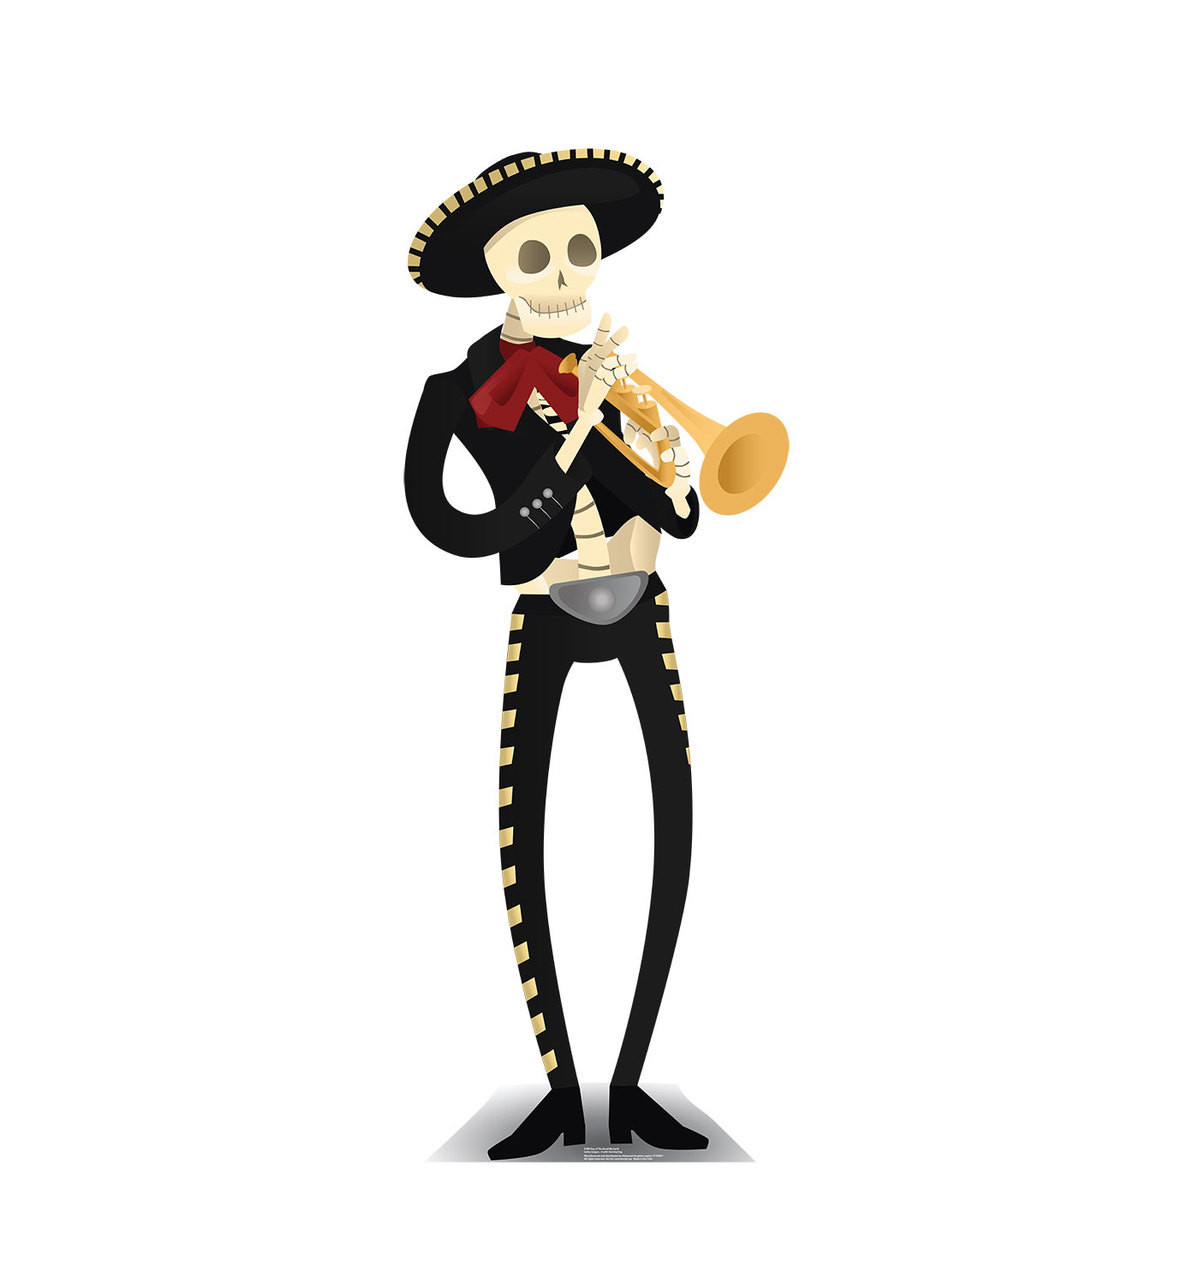 Day of the Dead Mariachi - Cardboard Cutout